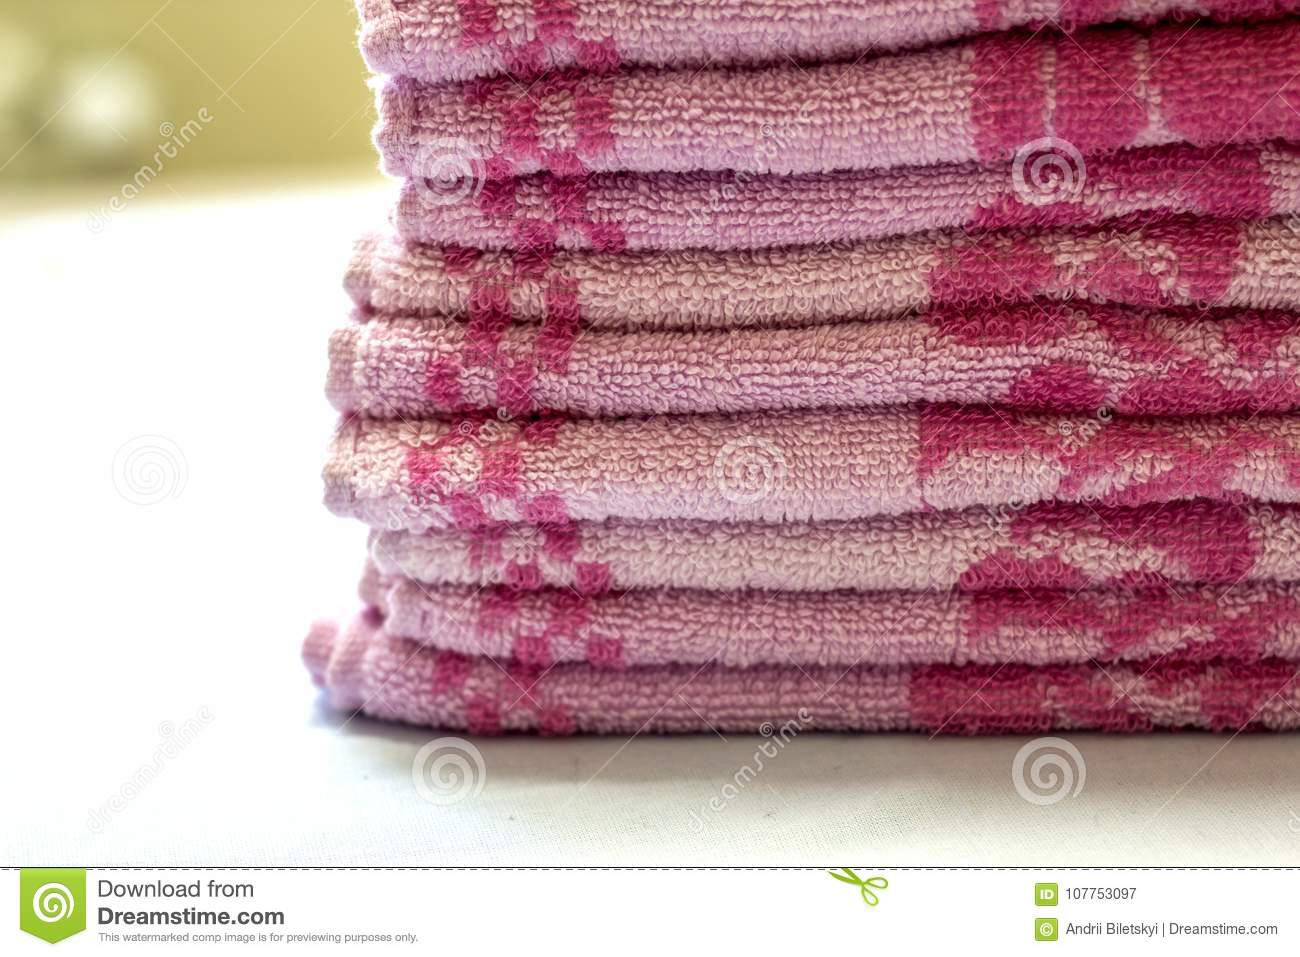 download stack of pink bath towels close up with blurred background stock image image - Pink Bathroom Towels